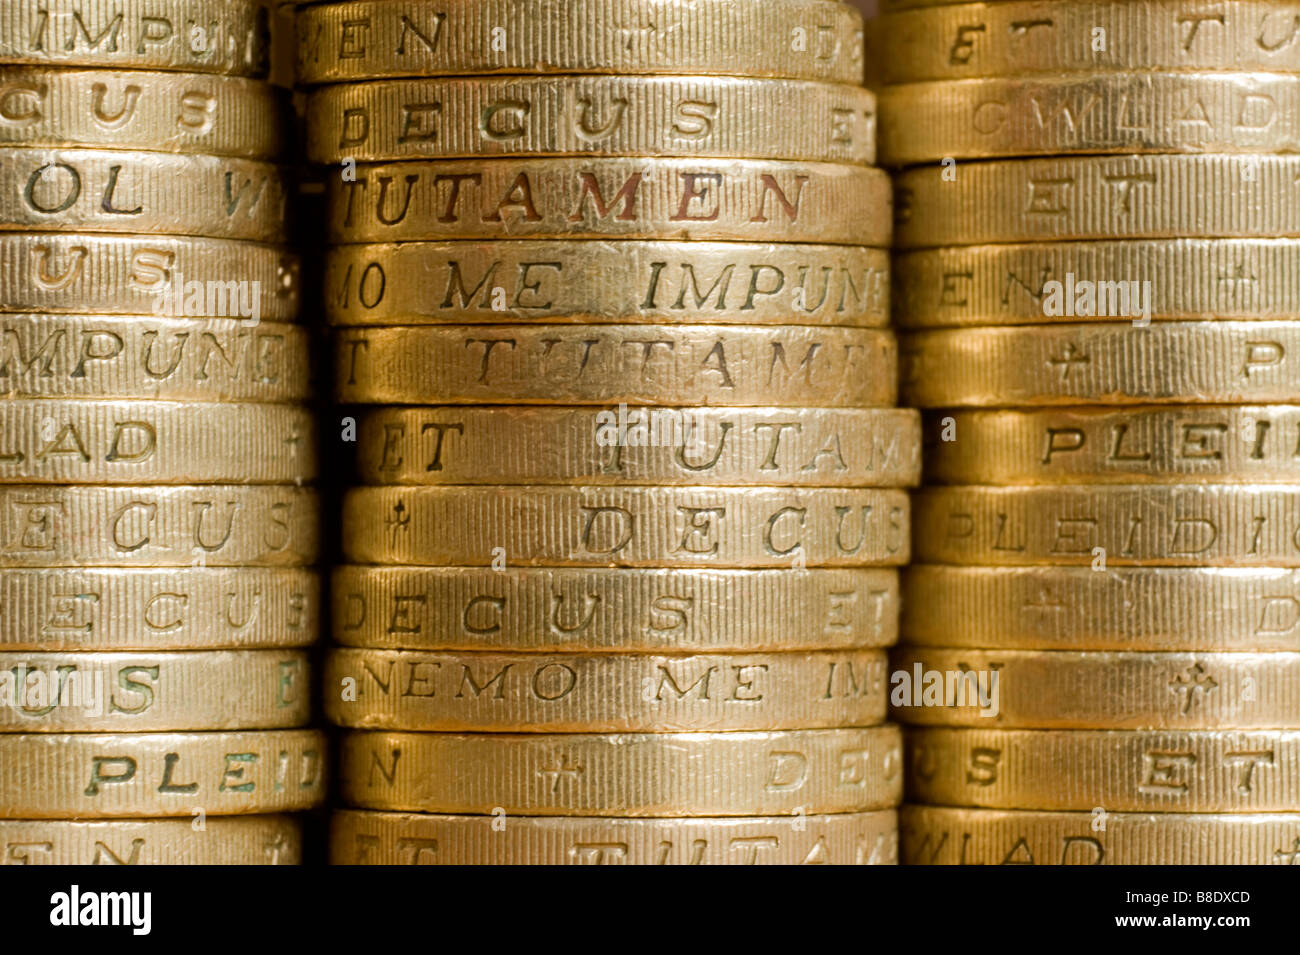 One pound coins in piles Picture by Andrew Hasson February 17th 2009 - Stock Image